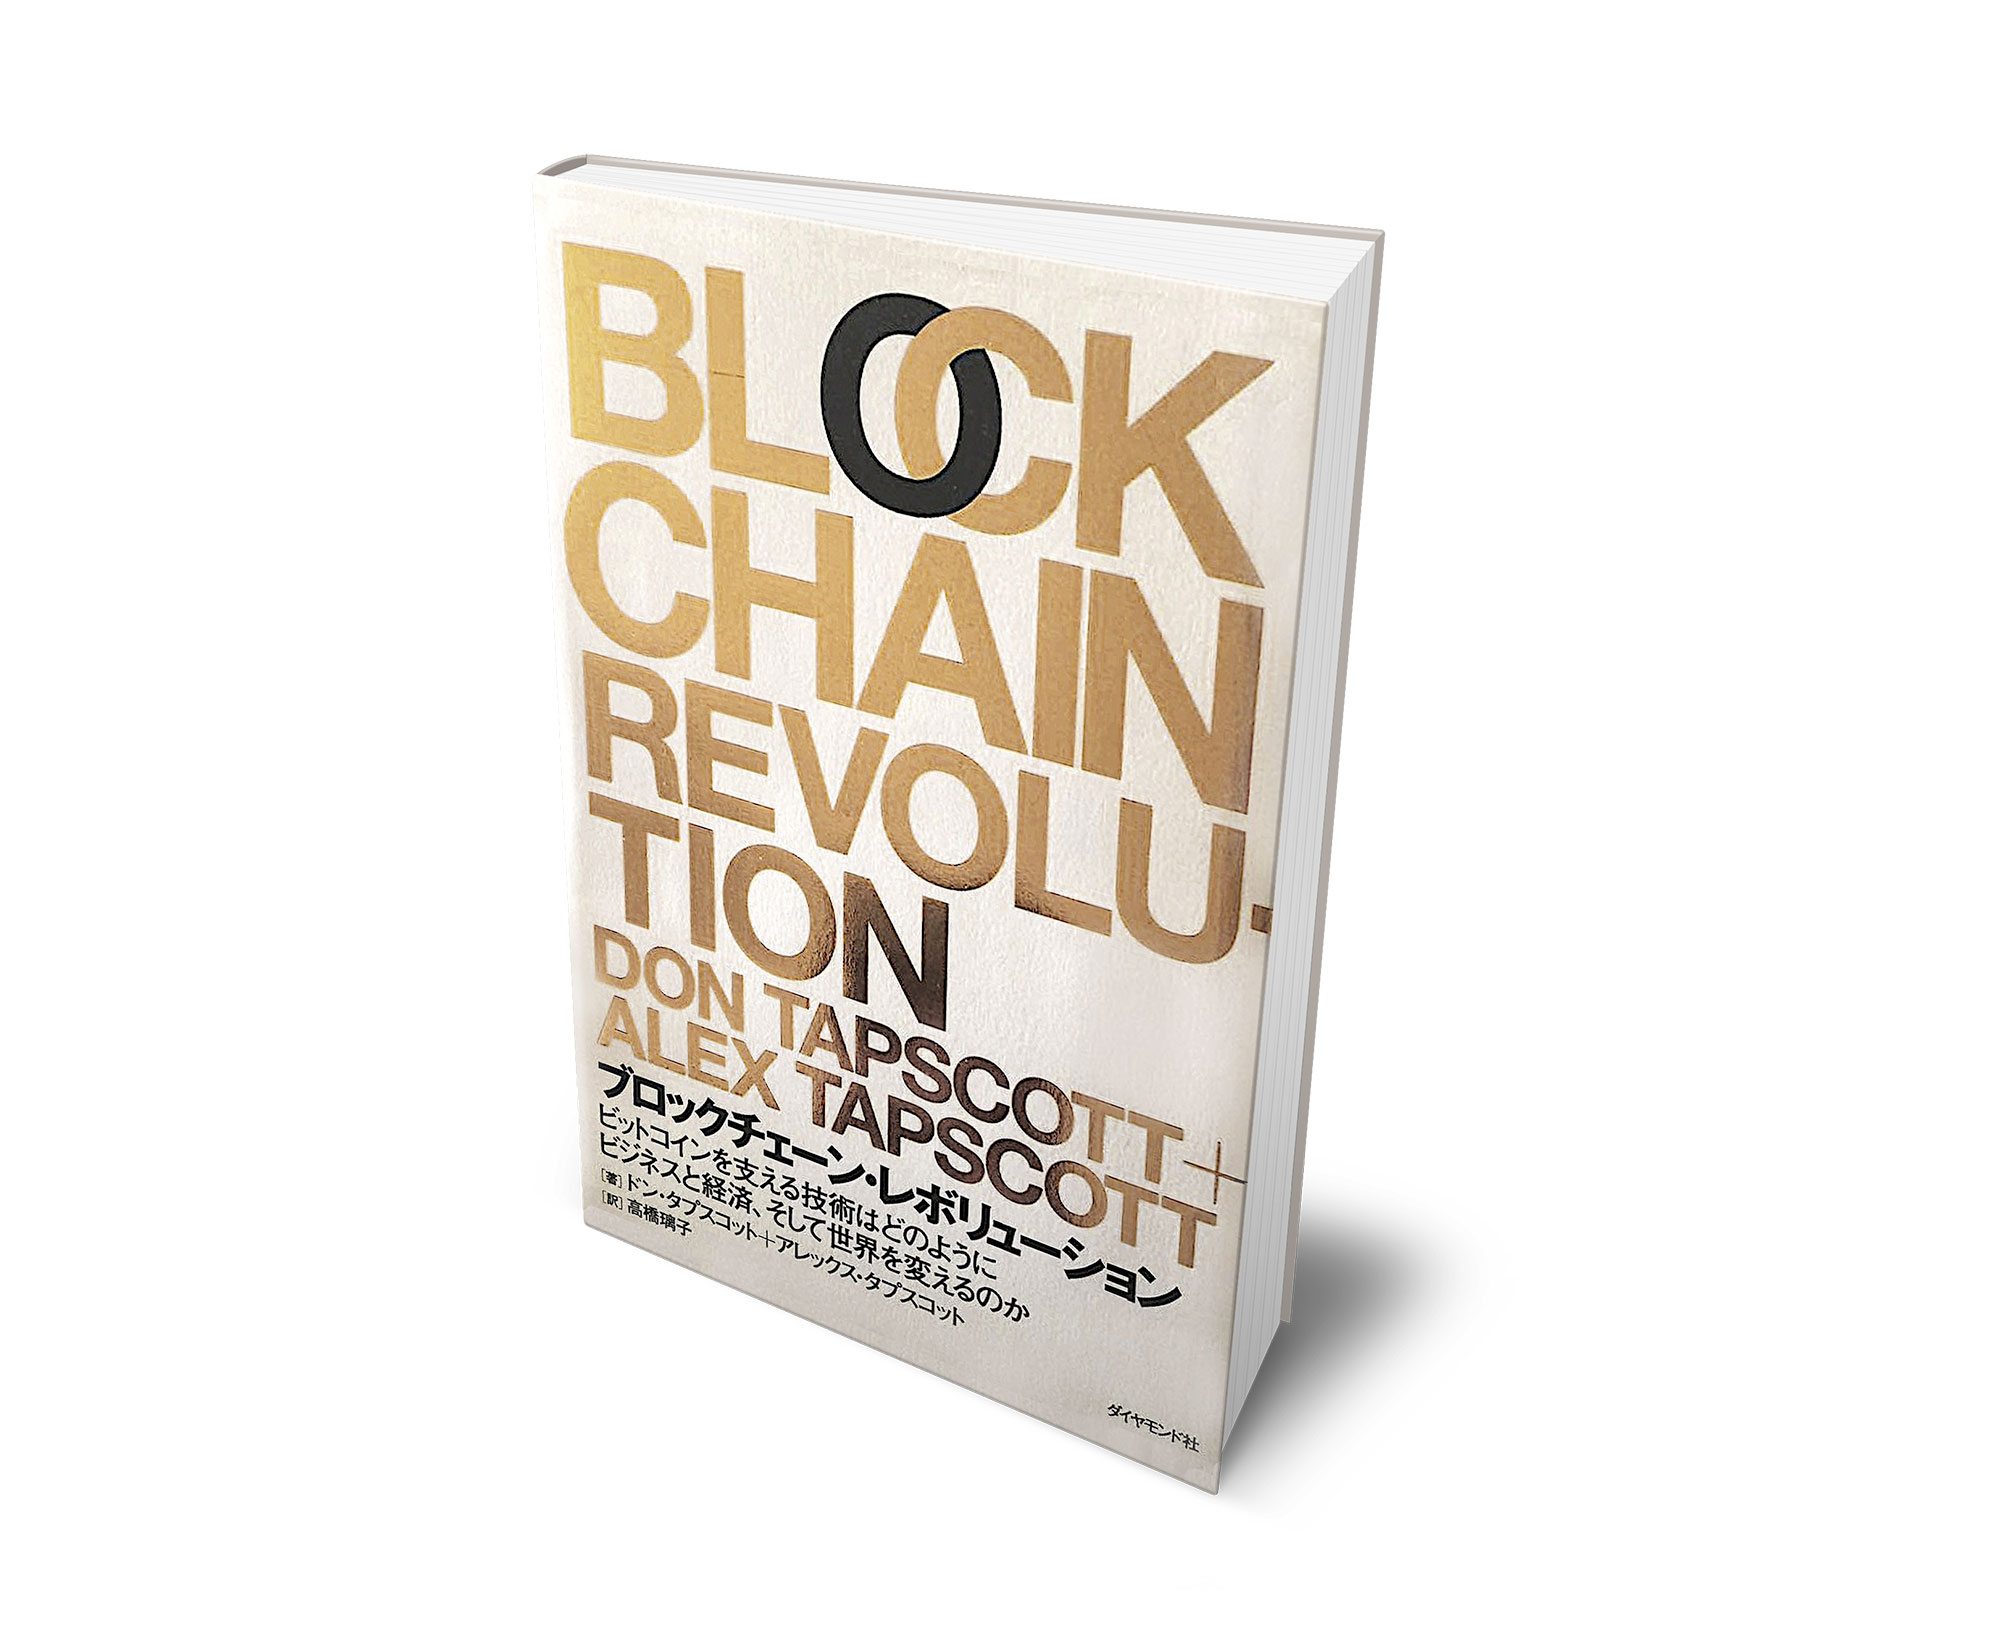 Blockchain Revolution - Japanese